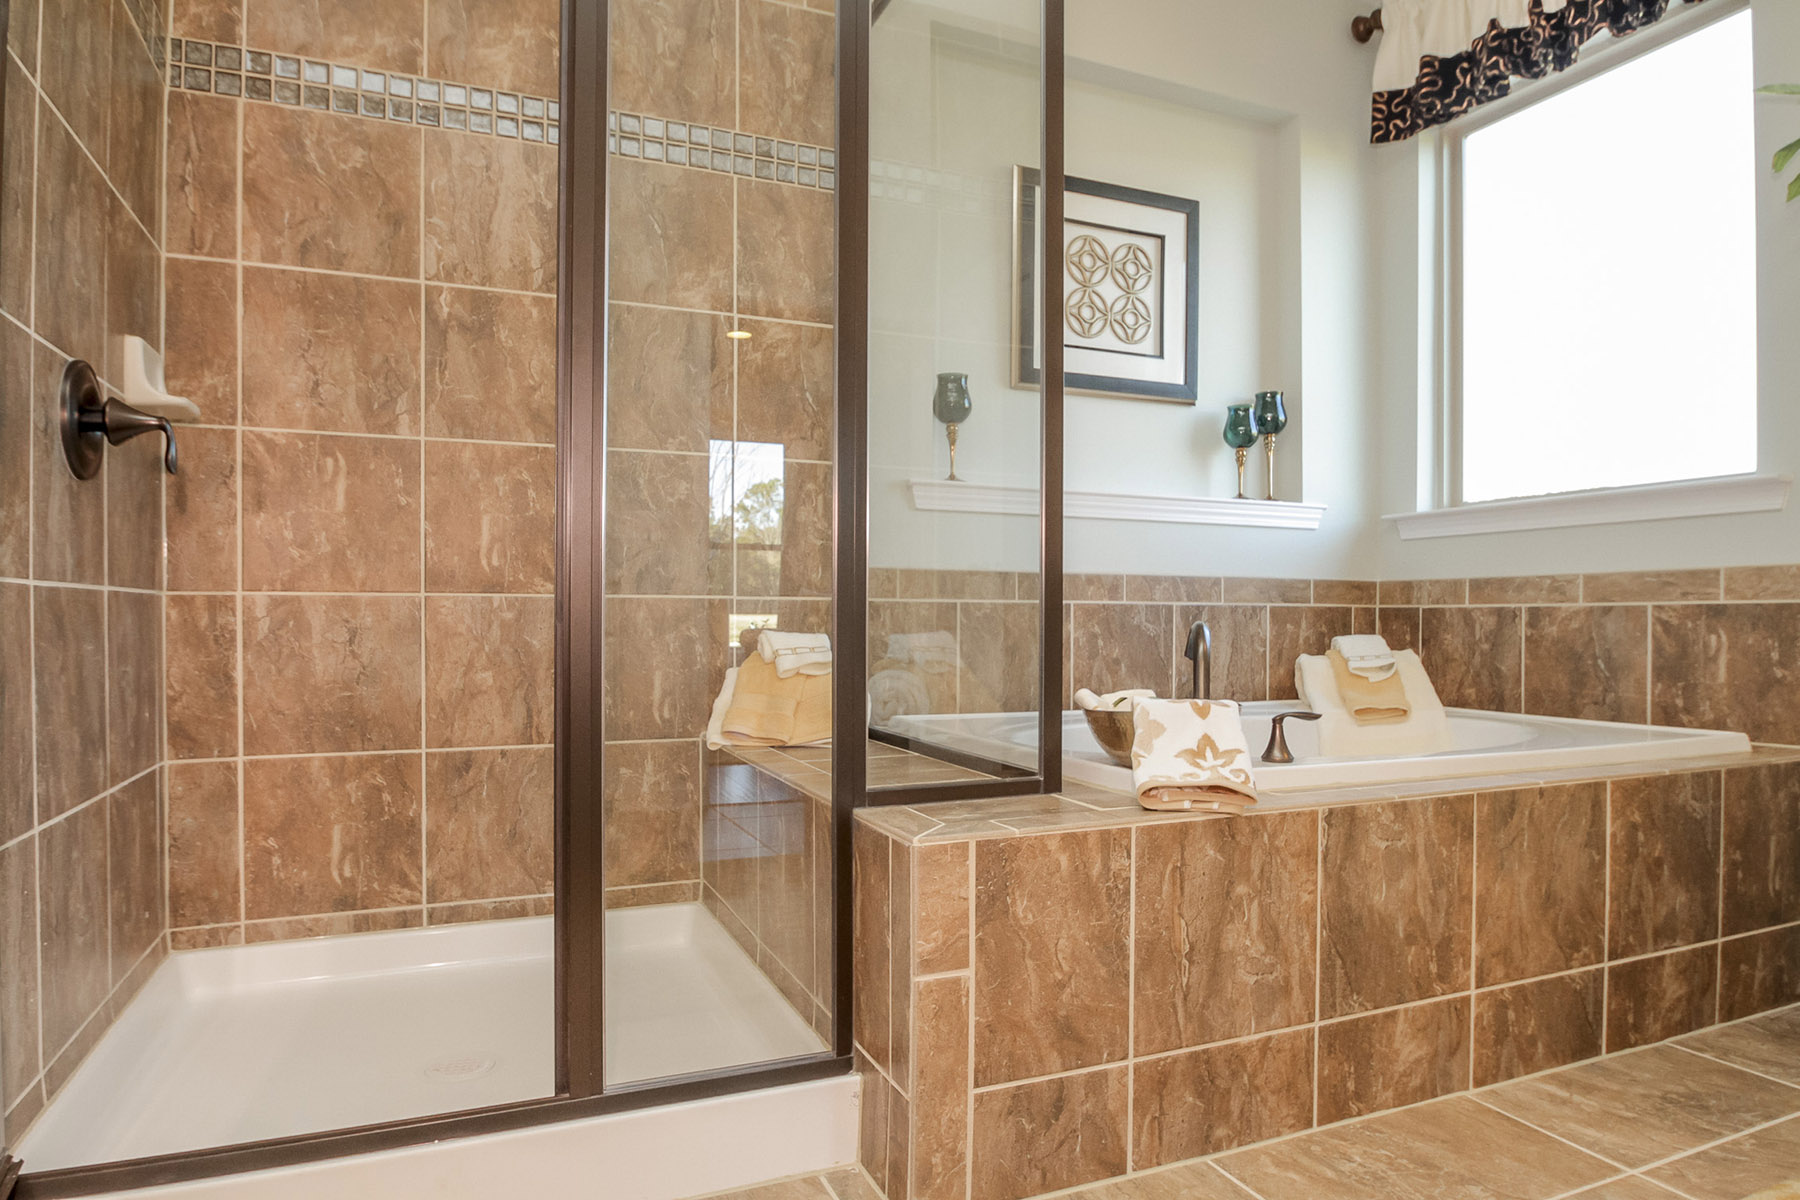 For Representational Purposes – Aberdeen Master Bathroom